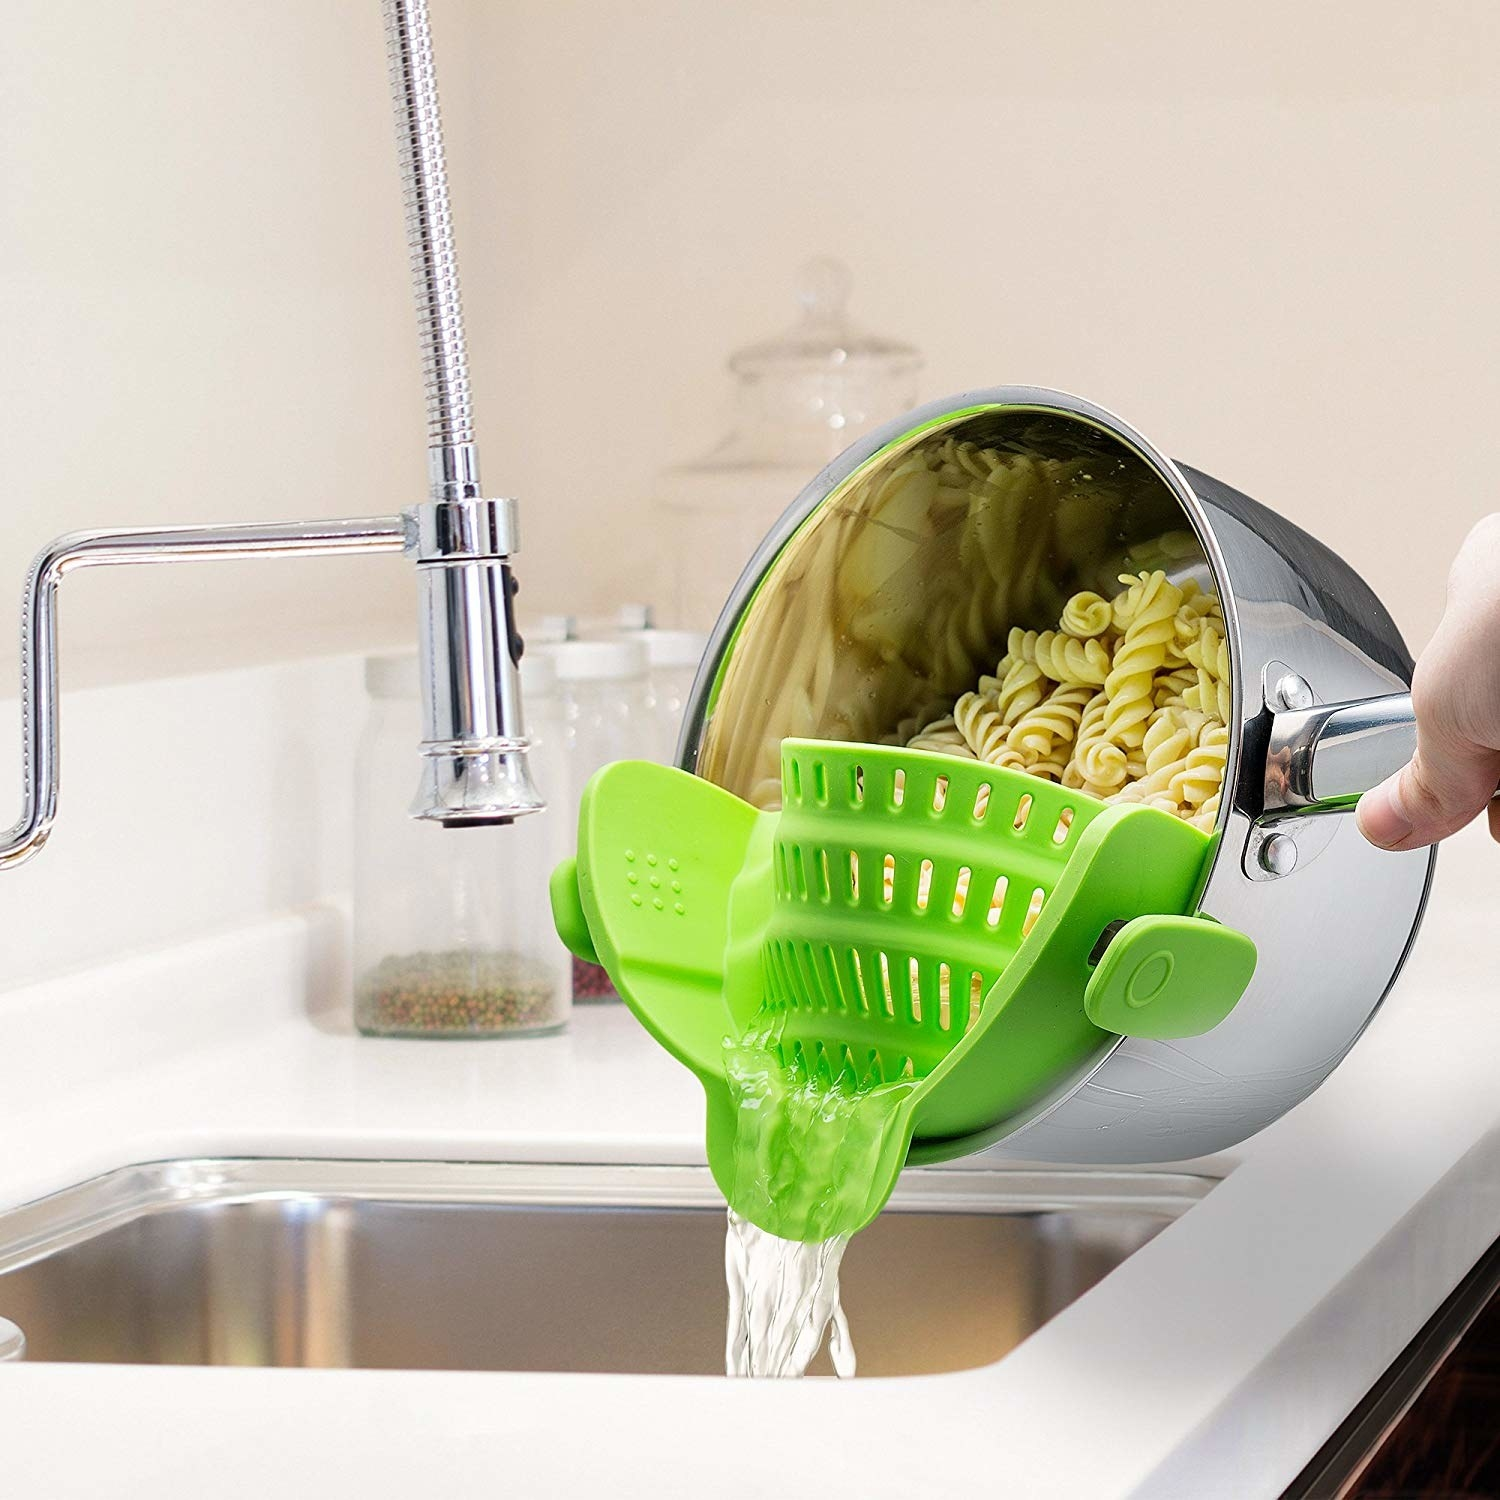 The clip-on strainer being used on a pot of pasta